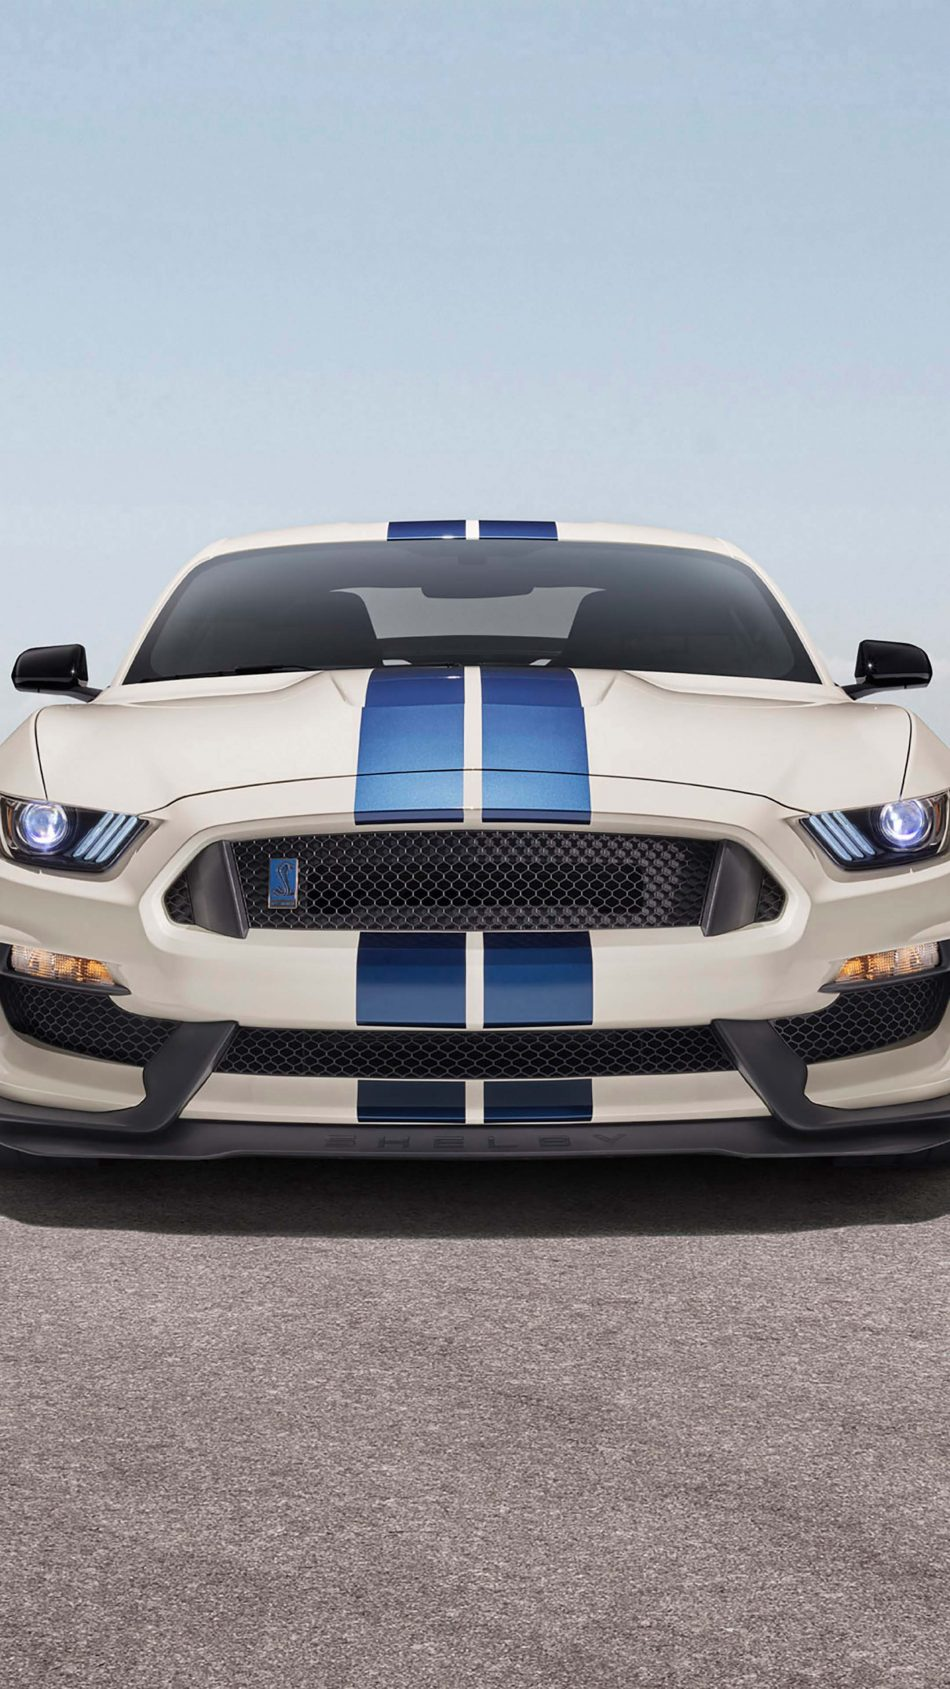 Shelby GT350 Heritage Edition 2020 4K Ultra HD Mobile Wallpaper